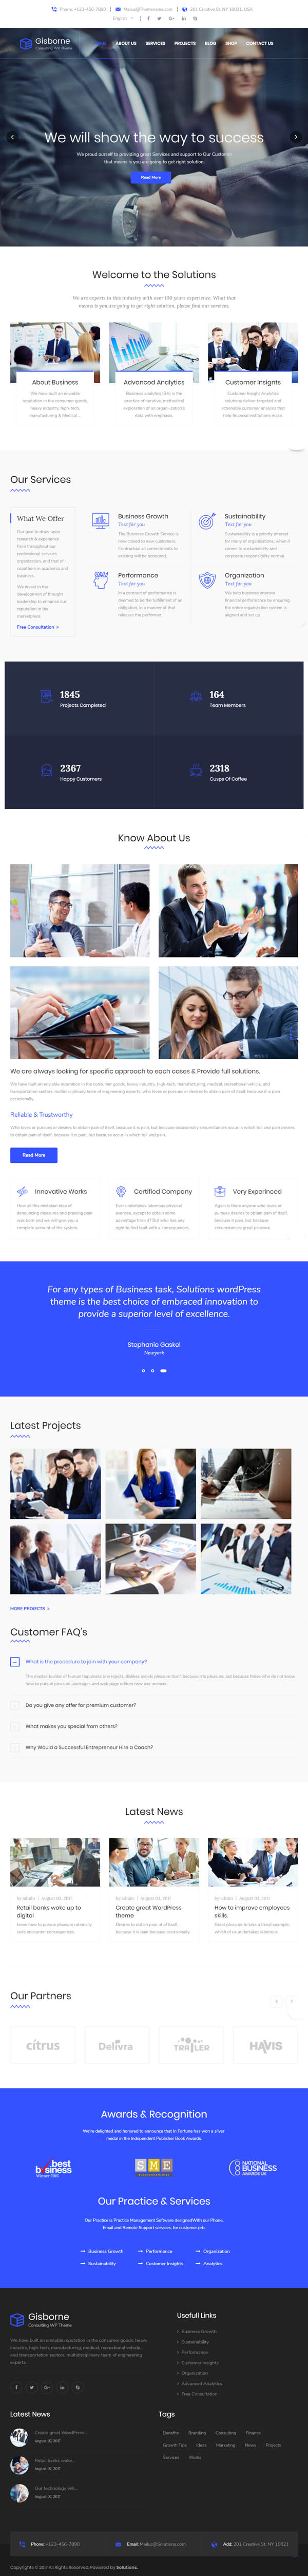 Gisborne - Business, Finance and Consulting WordPress Theme